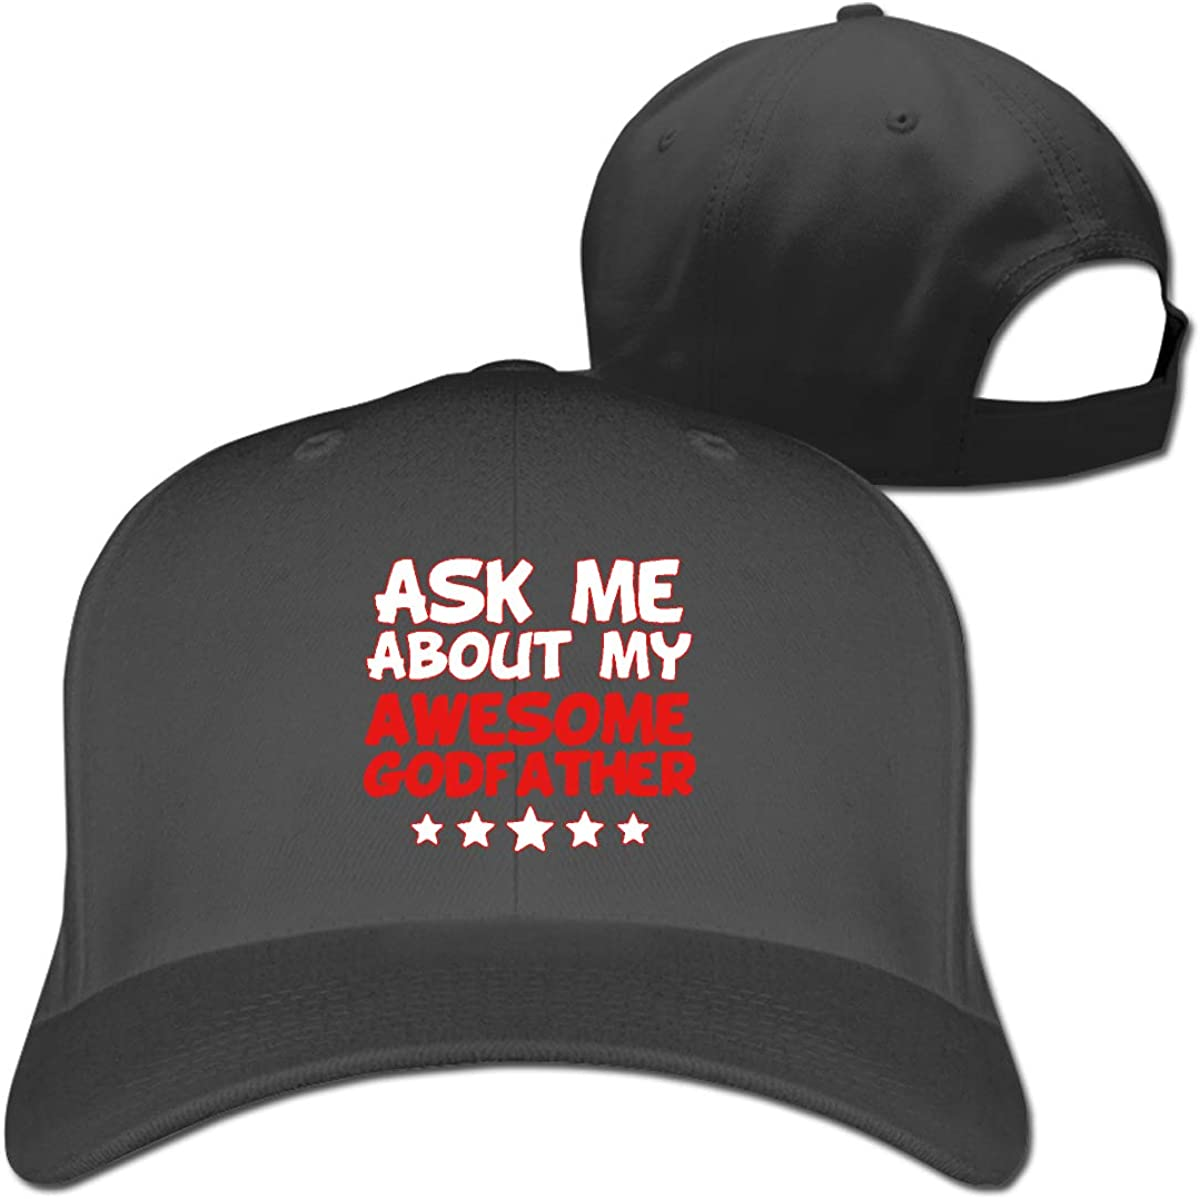 My Awesome Godfather Fashion Adjustable Cotton Baseball Caps Trucker Driver Hat Outdoor Cap Black